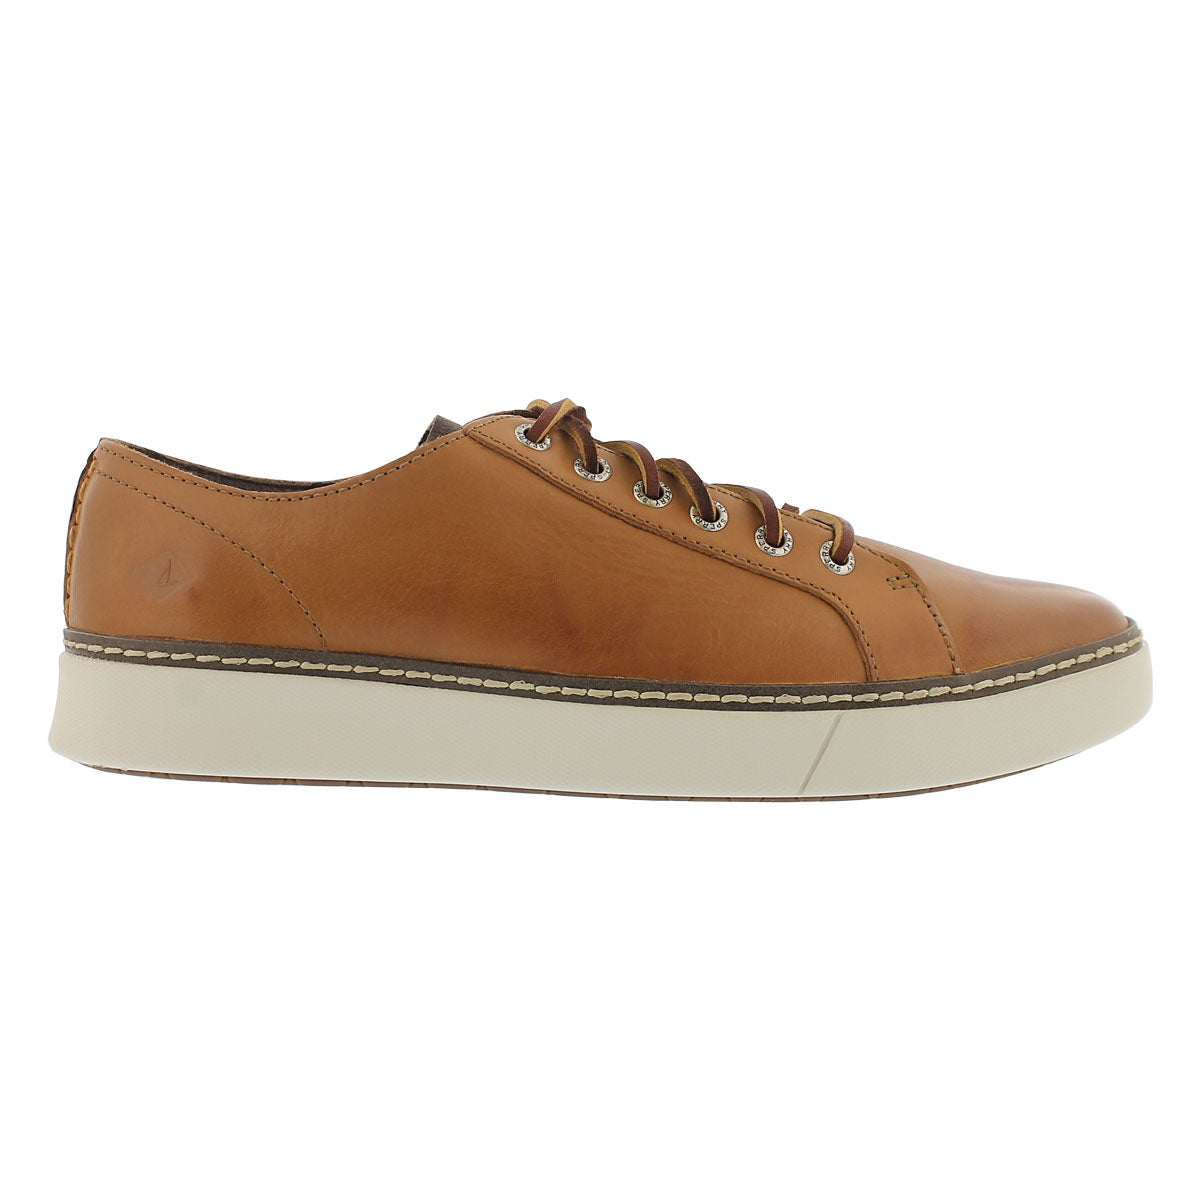 Mns Clipper LTT tan lace up sneaker